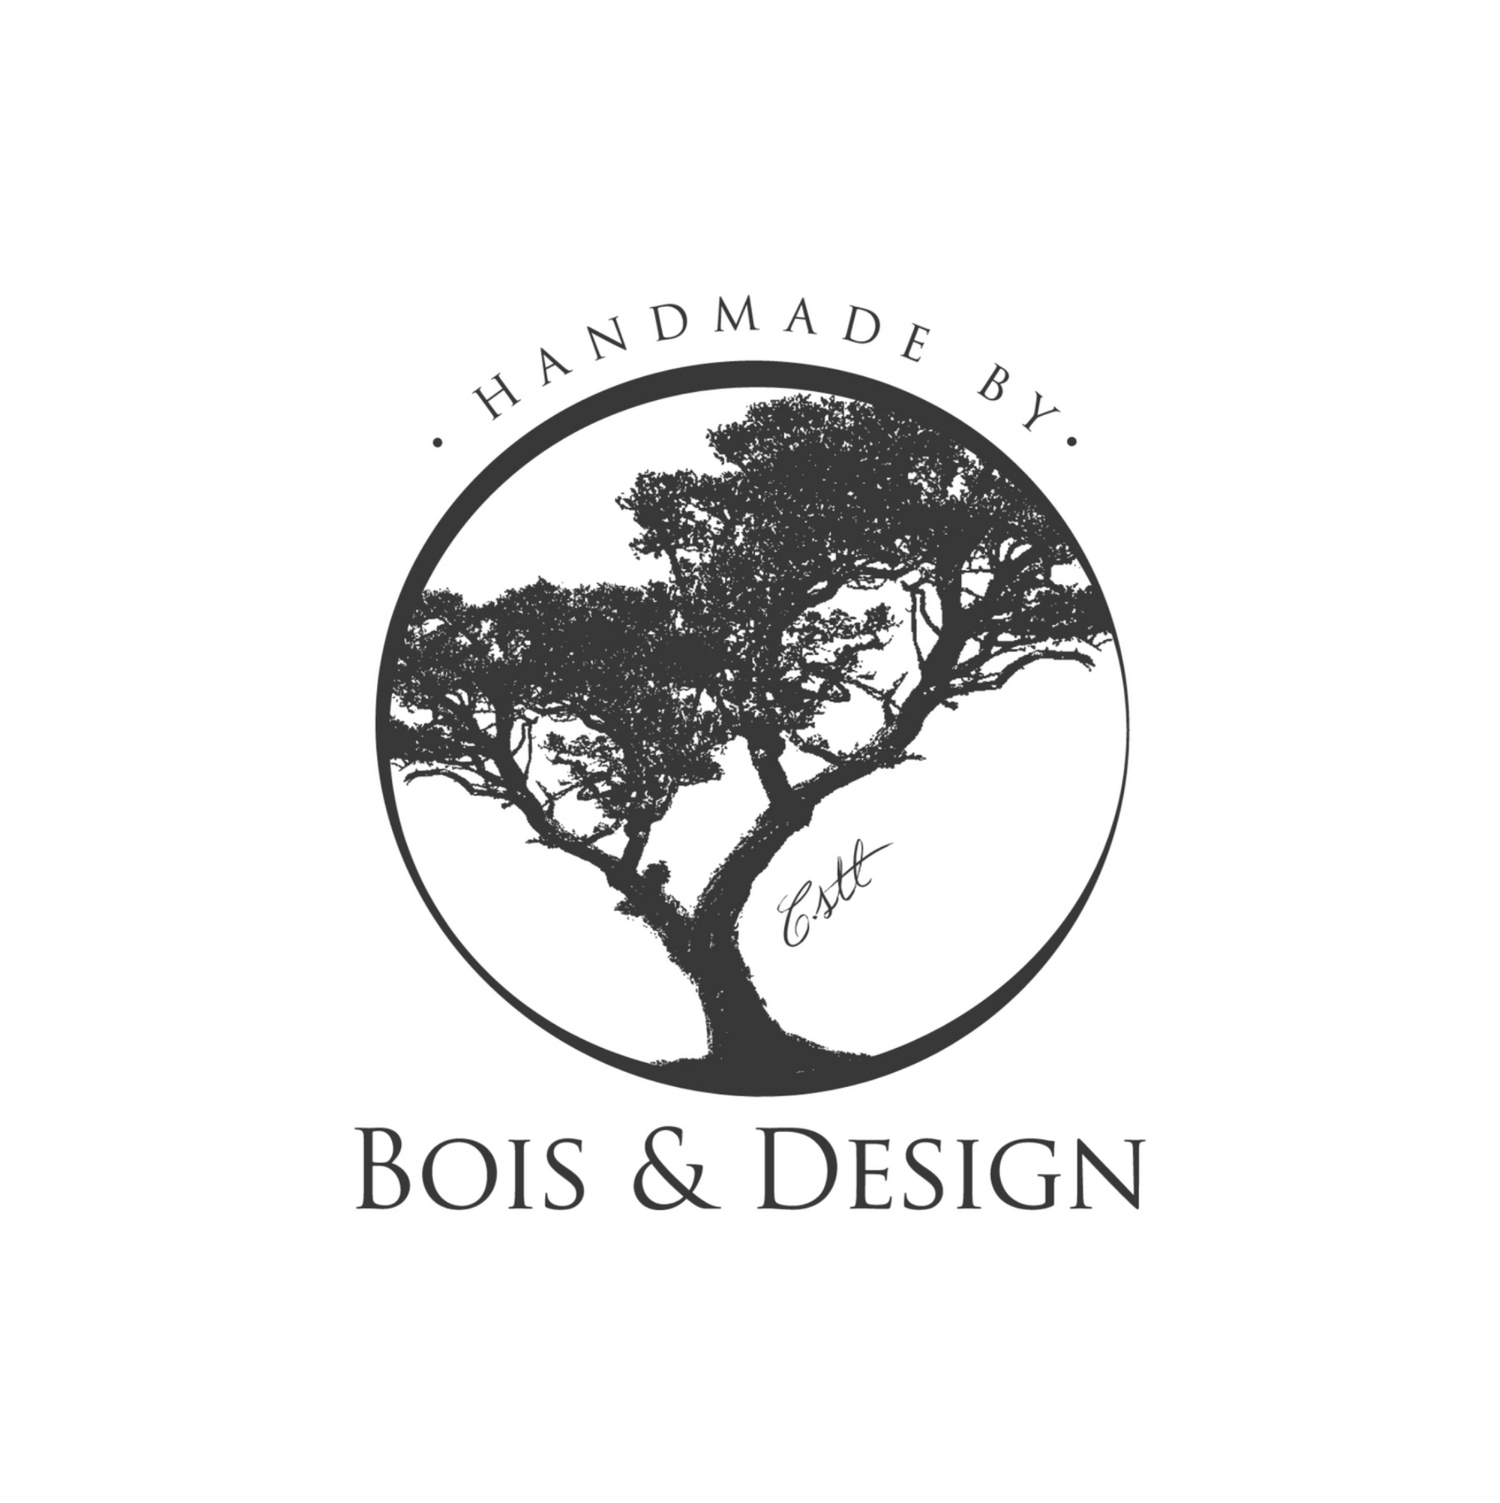 Bois & Design - custom made hardwood furniture